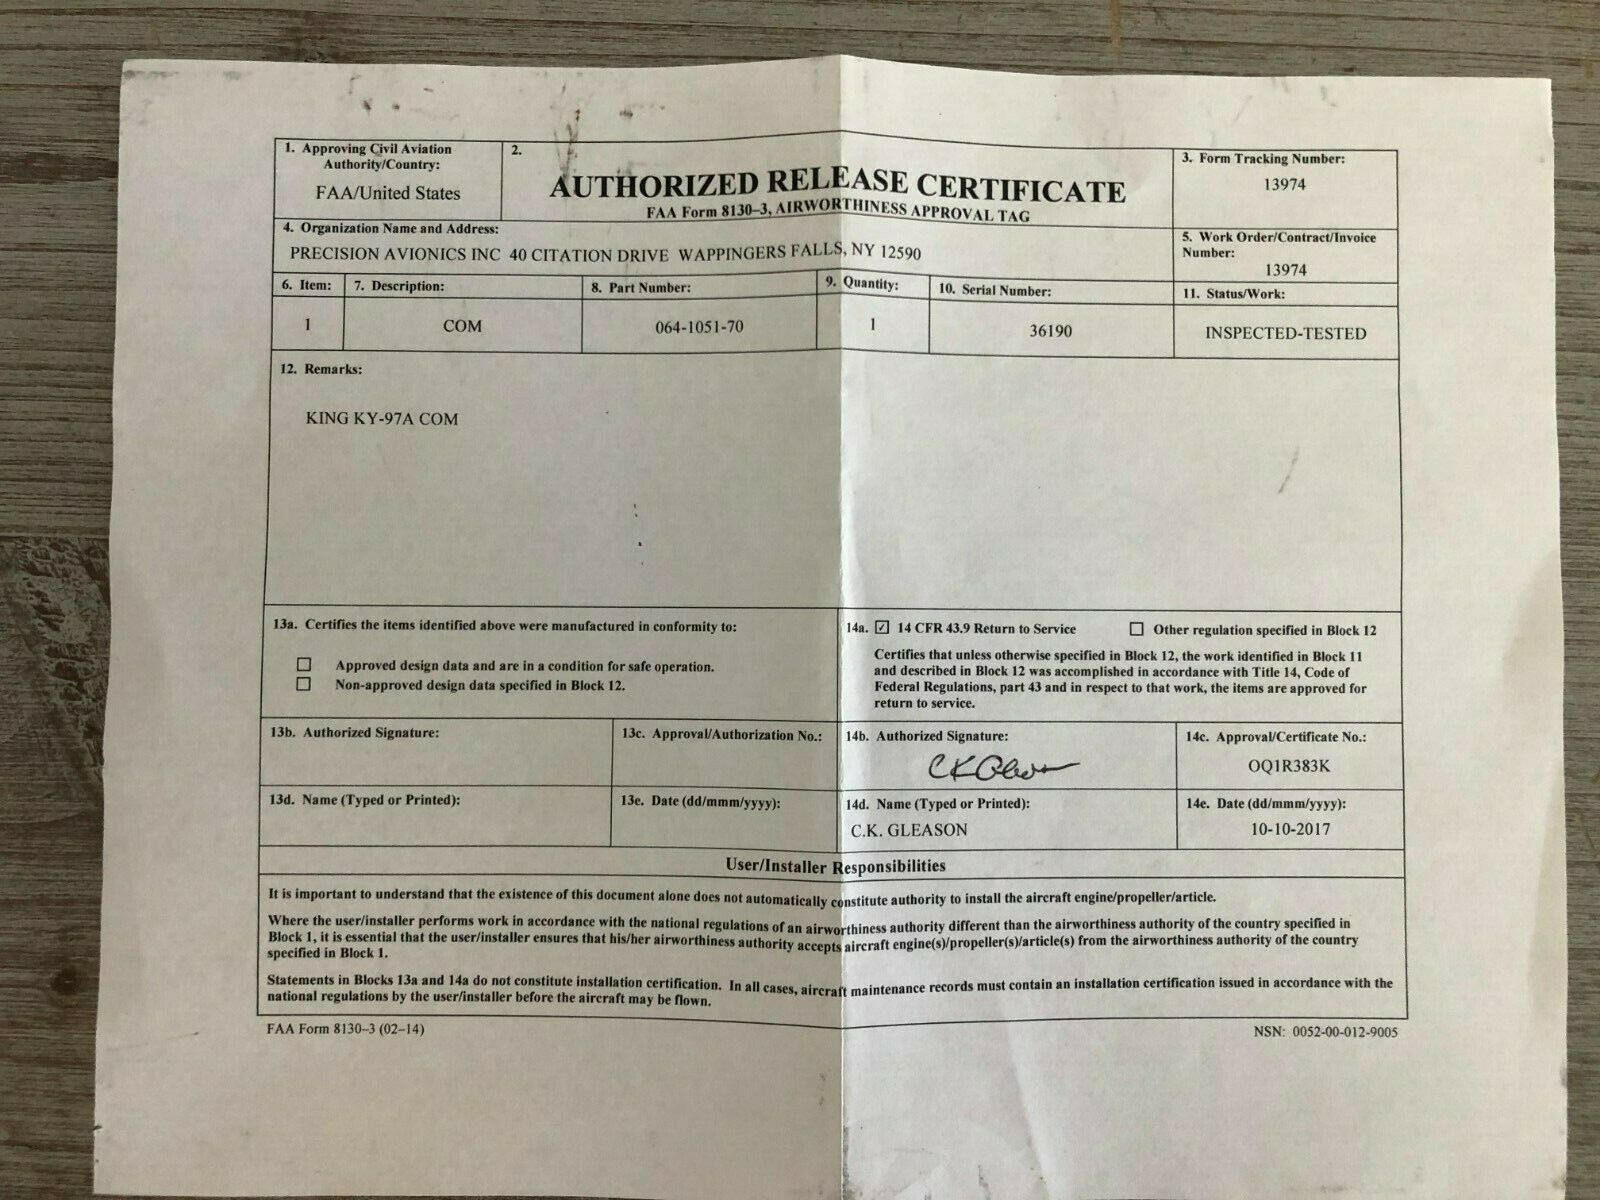 BENDIX/KING KY 97A 14 VDC P/N 064-1051-70 WITH  FRESH FAA FORM 8130-3